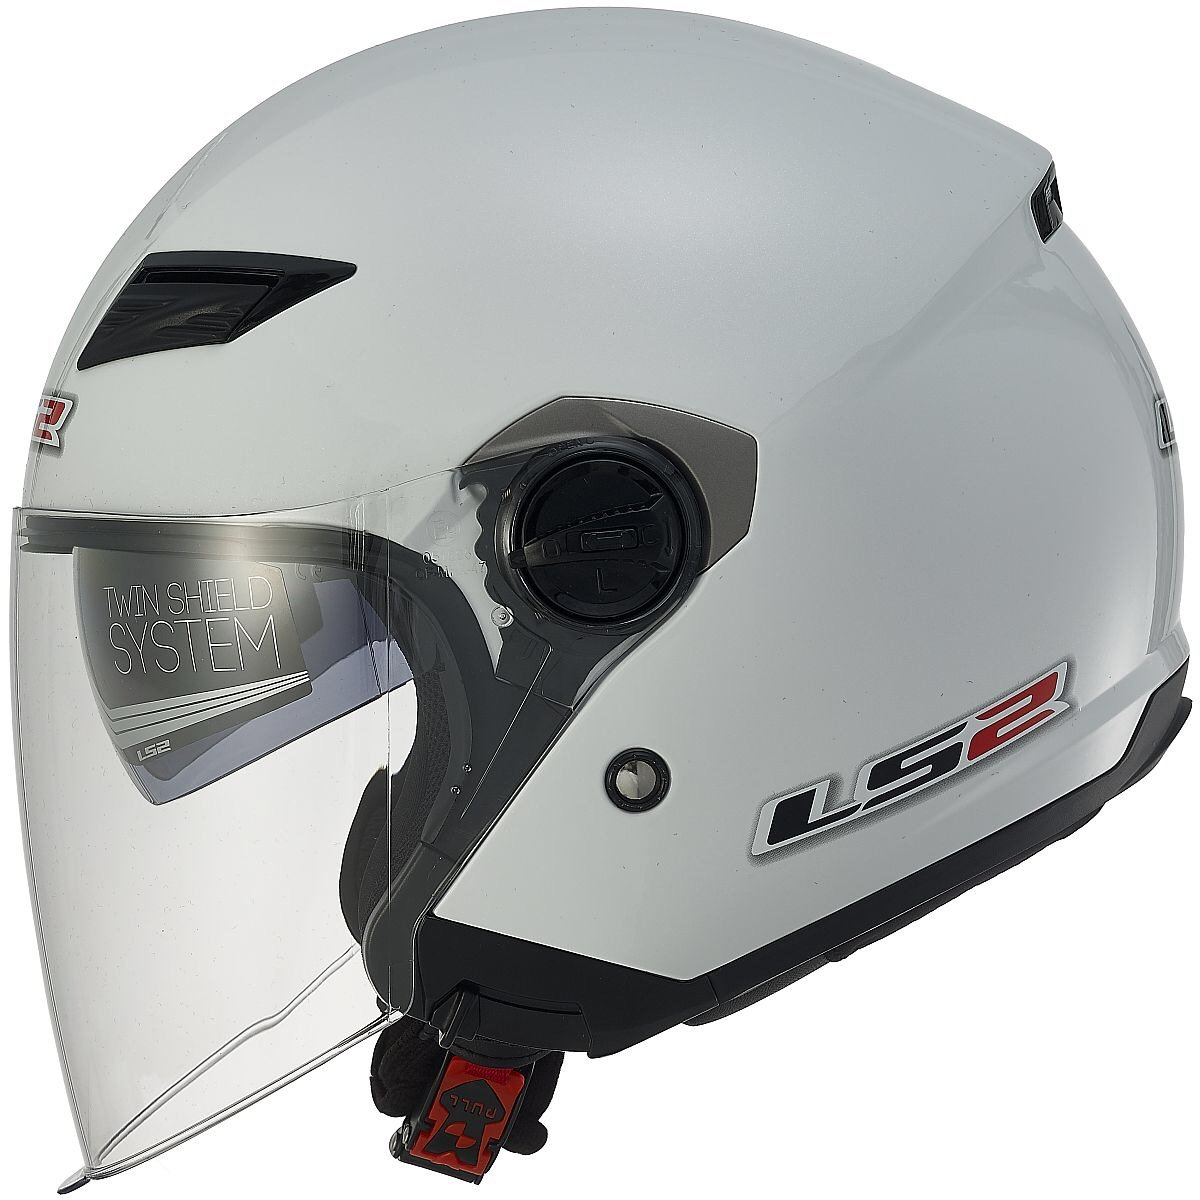 6d539f67 Galleon - LS2 Helmets 569-3046 Track Solid Open Face Motorcycle Helmet With  Sunshield (Pearl White, XX-Large)